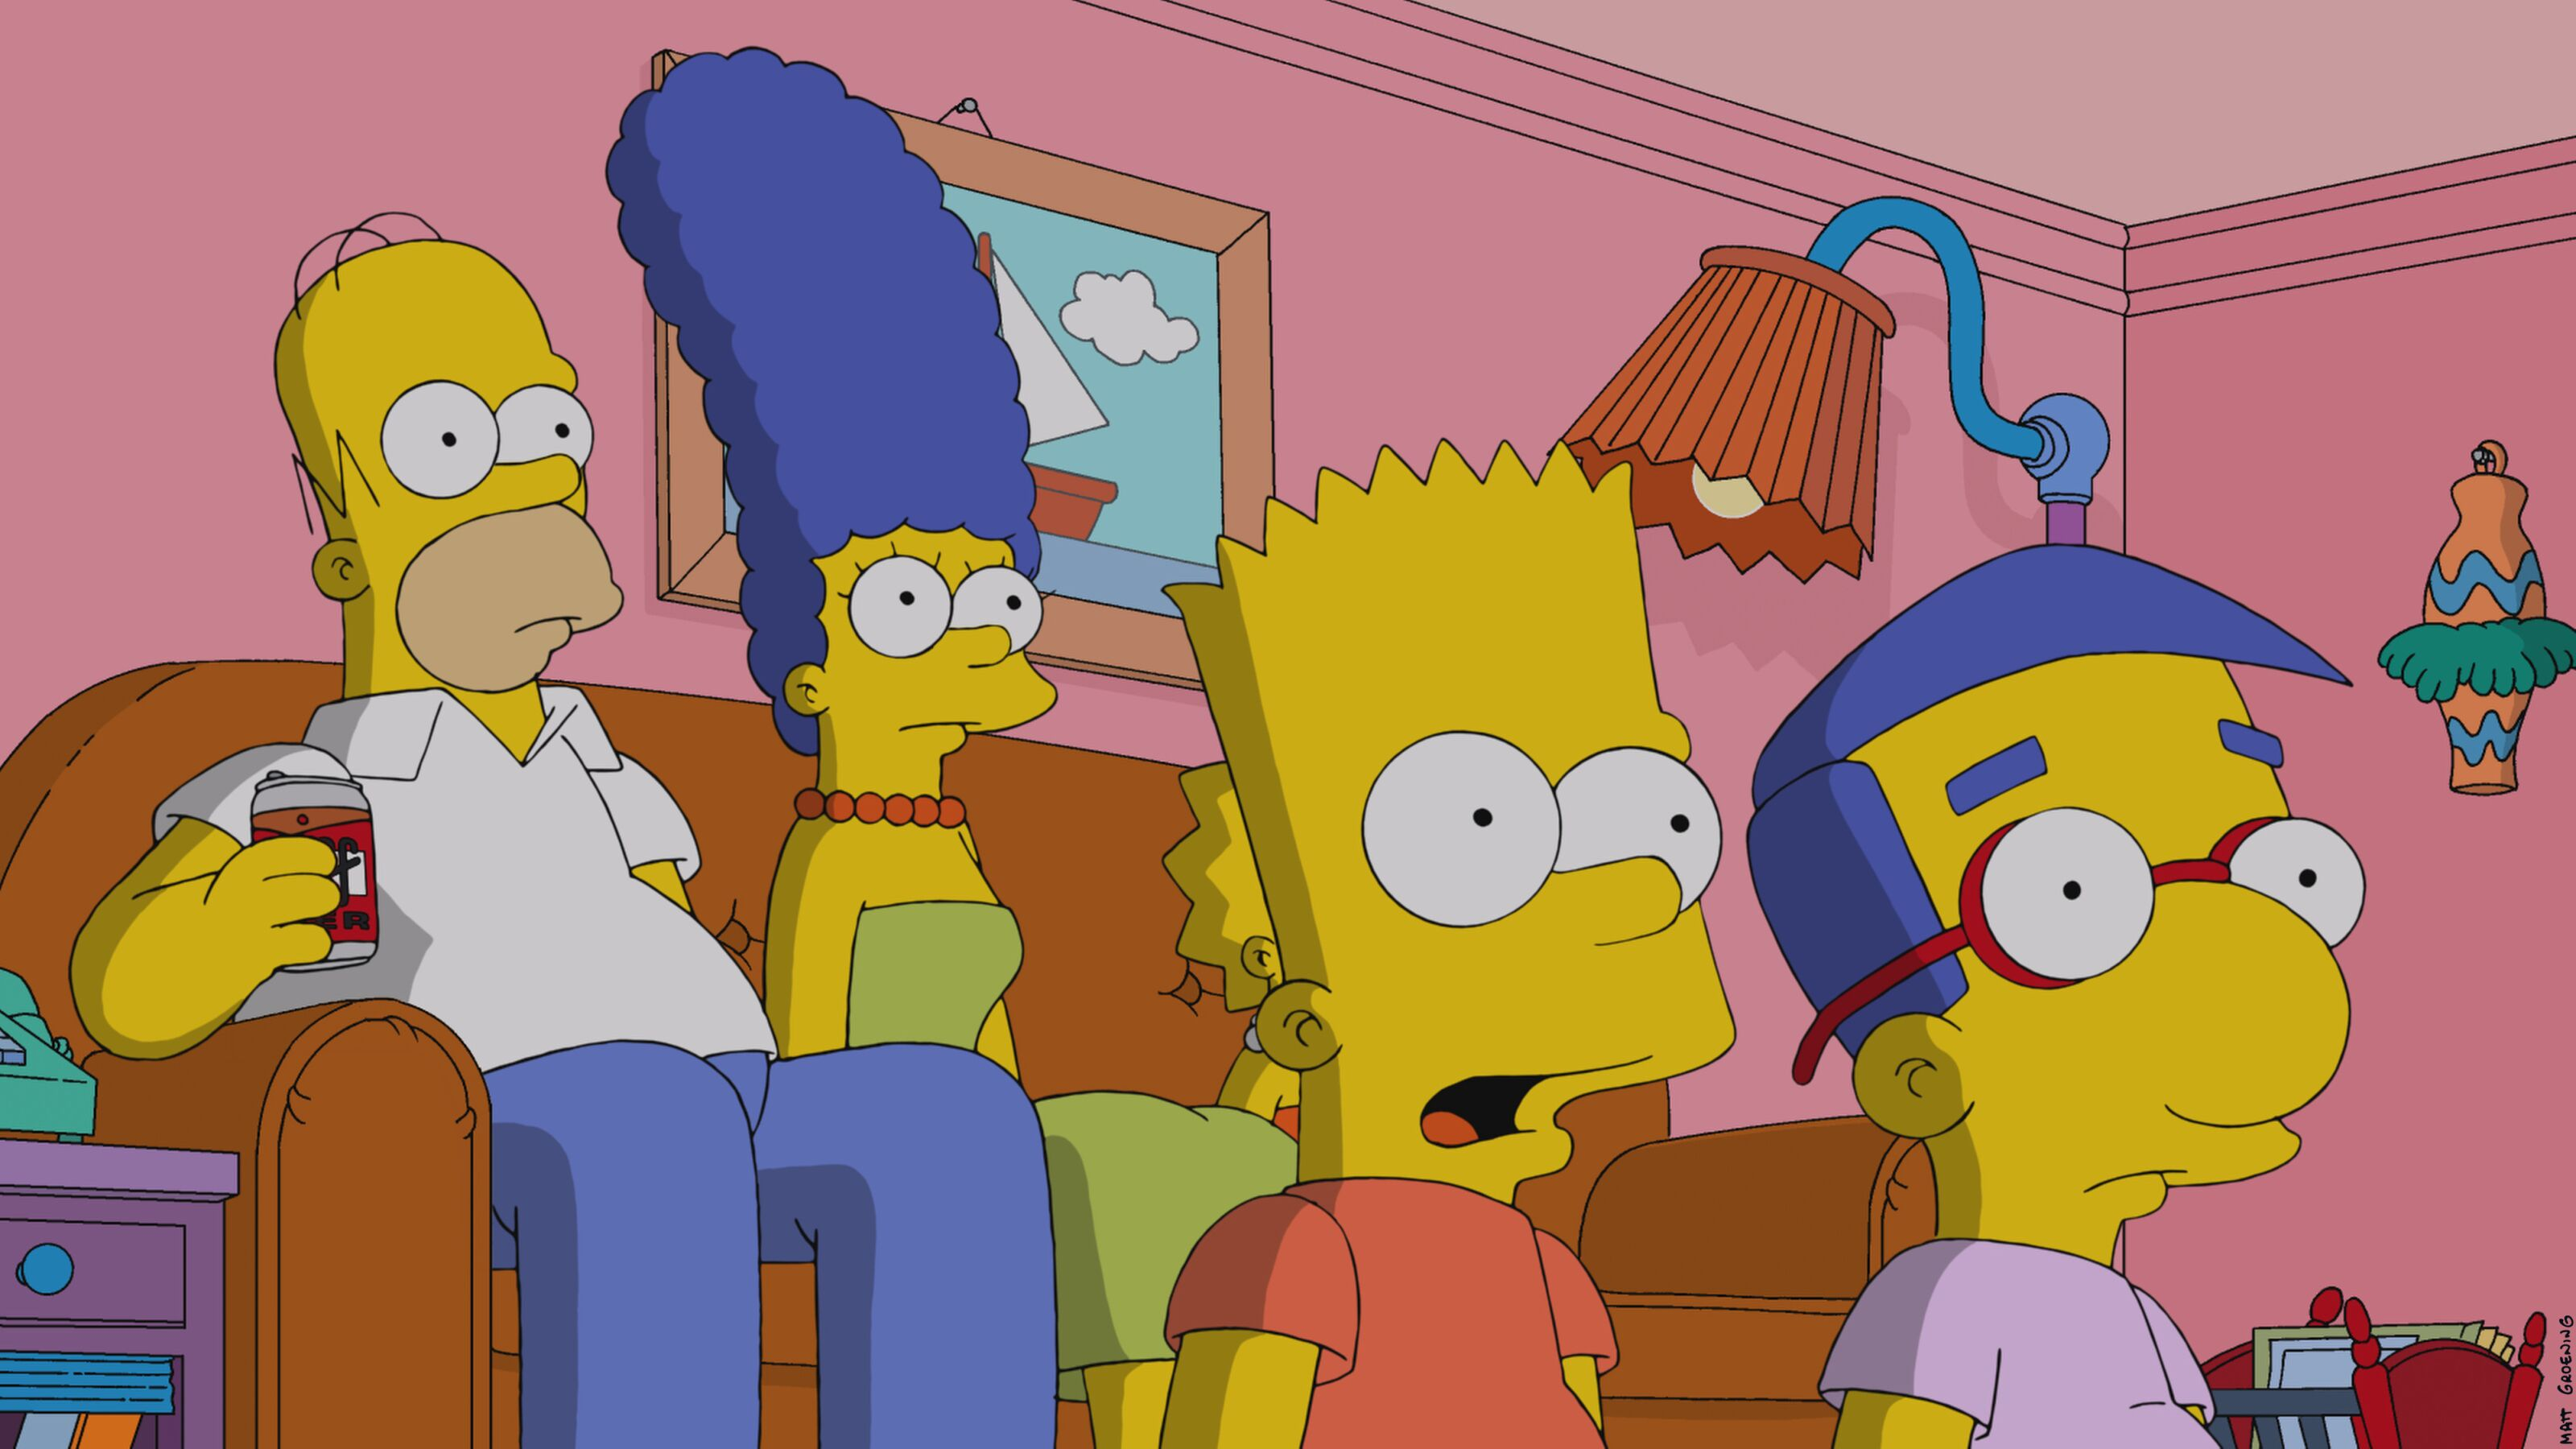 The Simpsons Season 19 is now on DVD: Is the disc worth the wait?